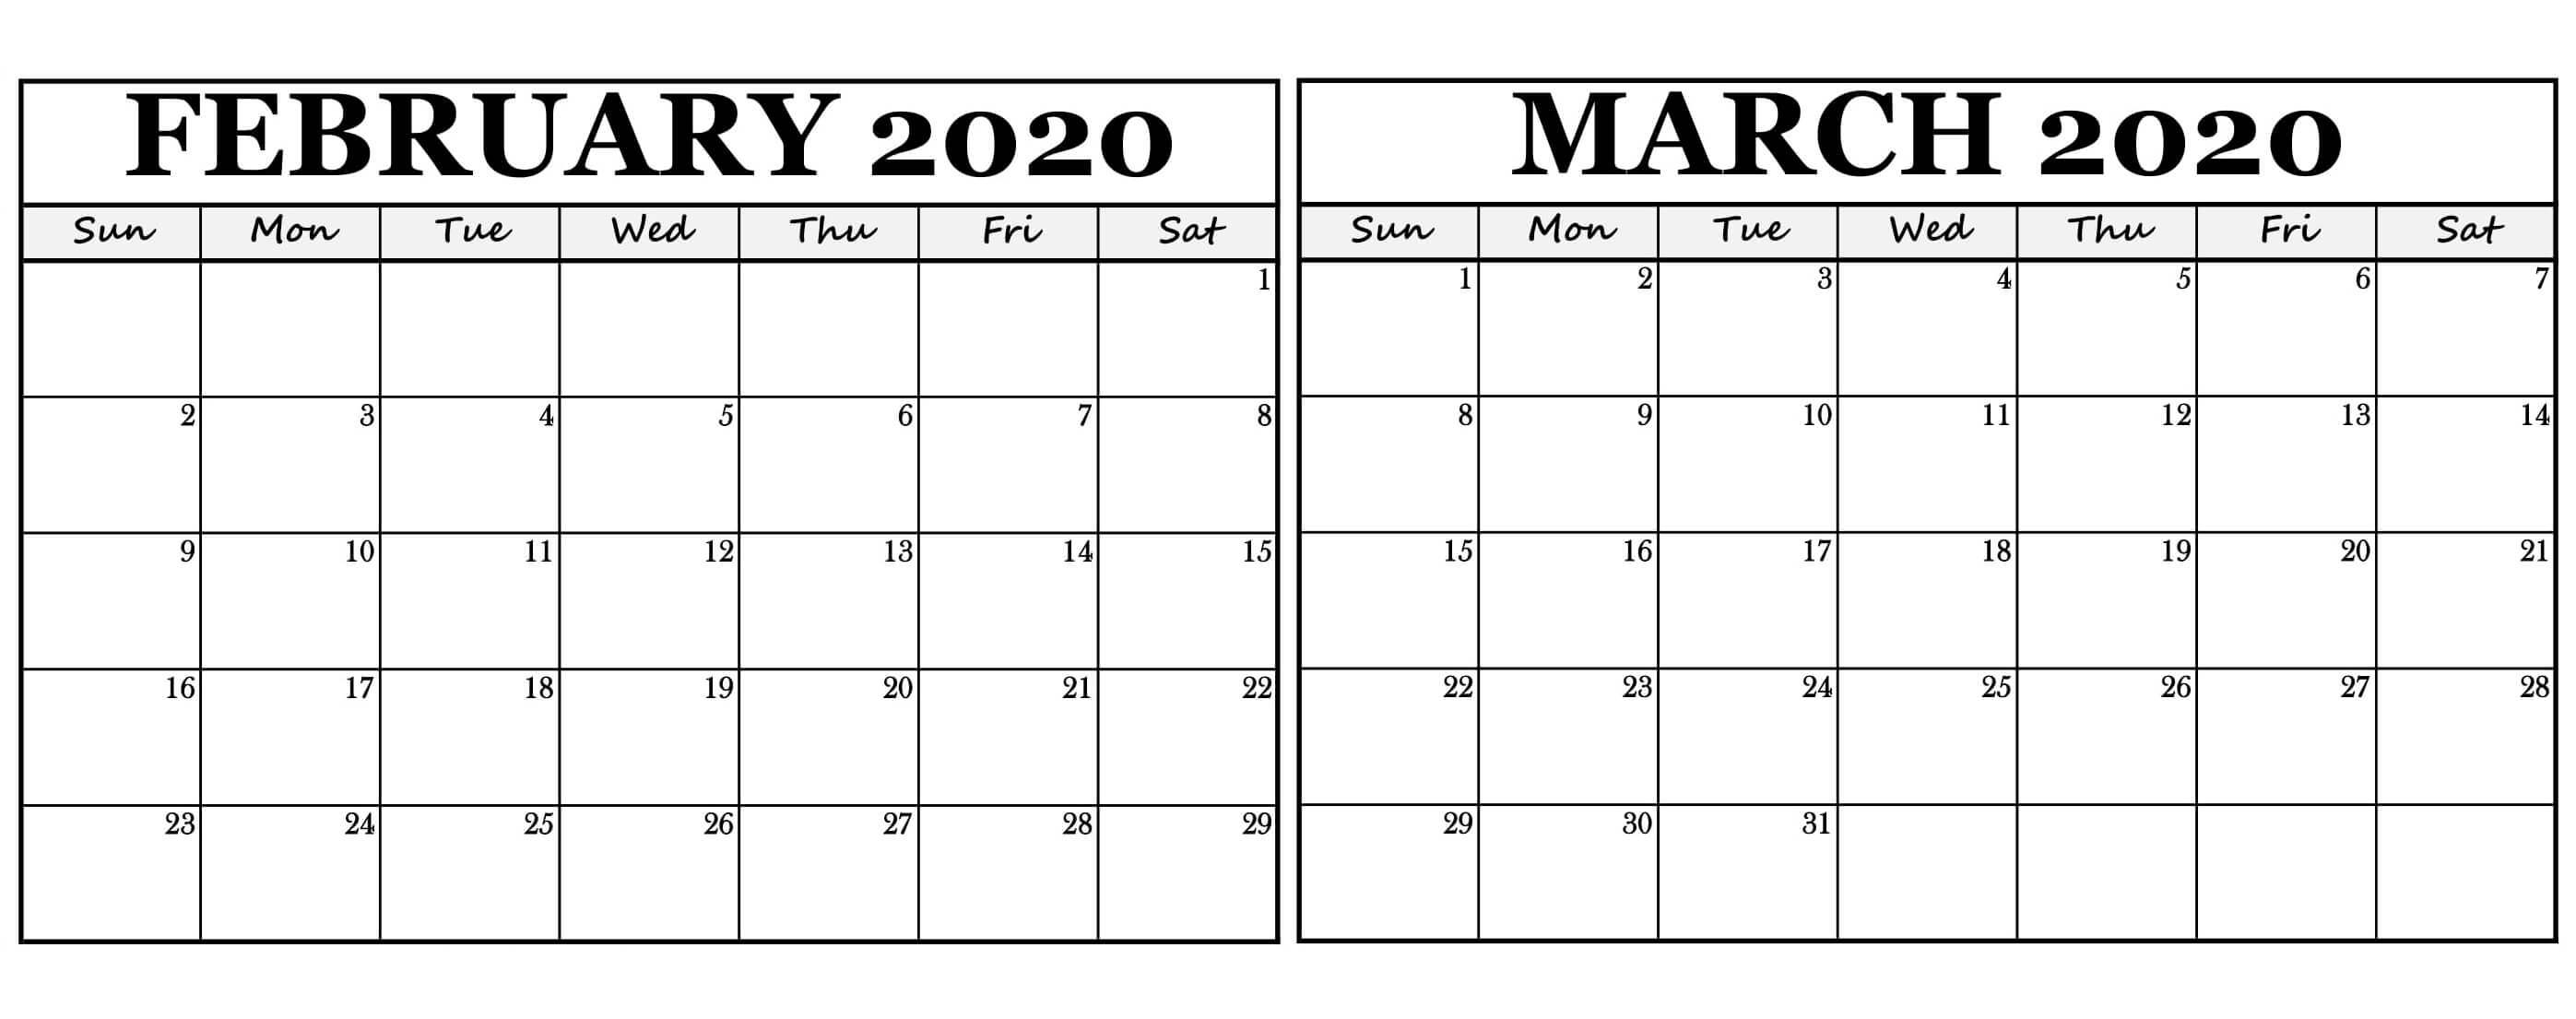 February March 2020 Calendar Template  2019 Calendars For in 2020 Calendar February And March